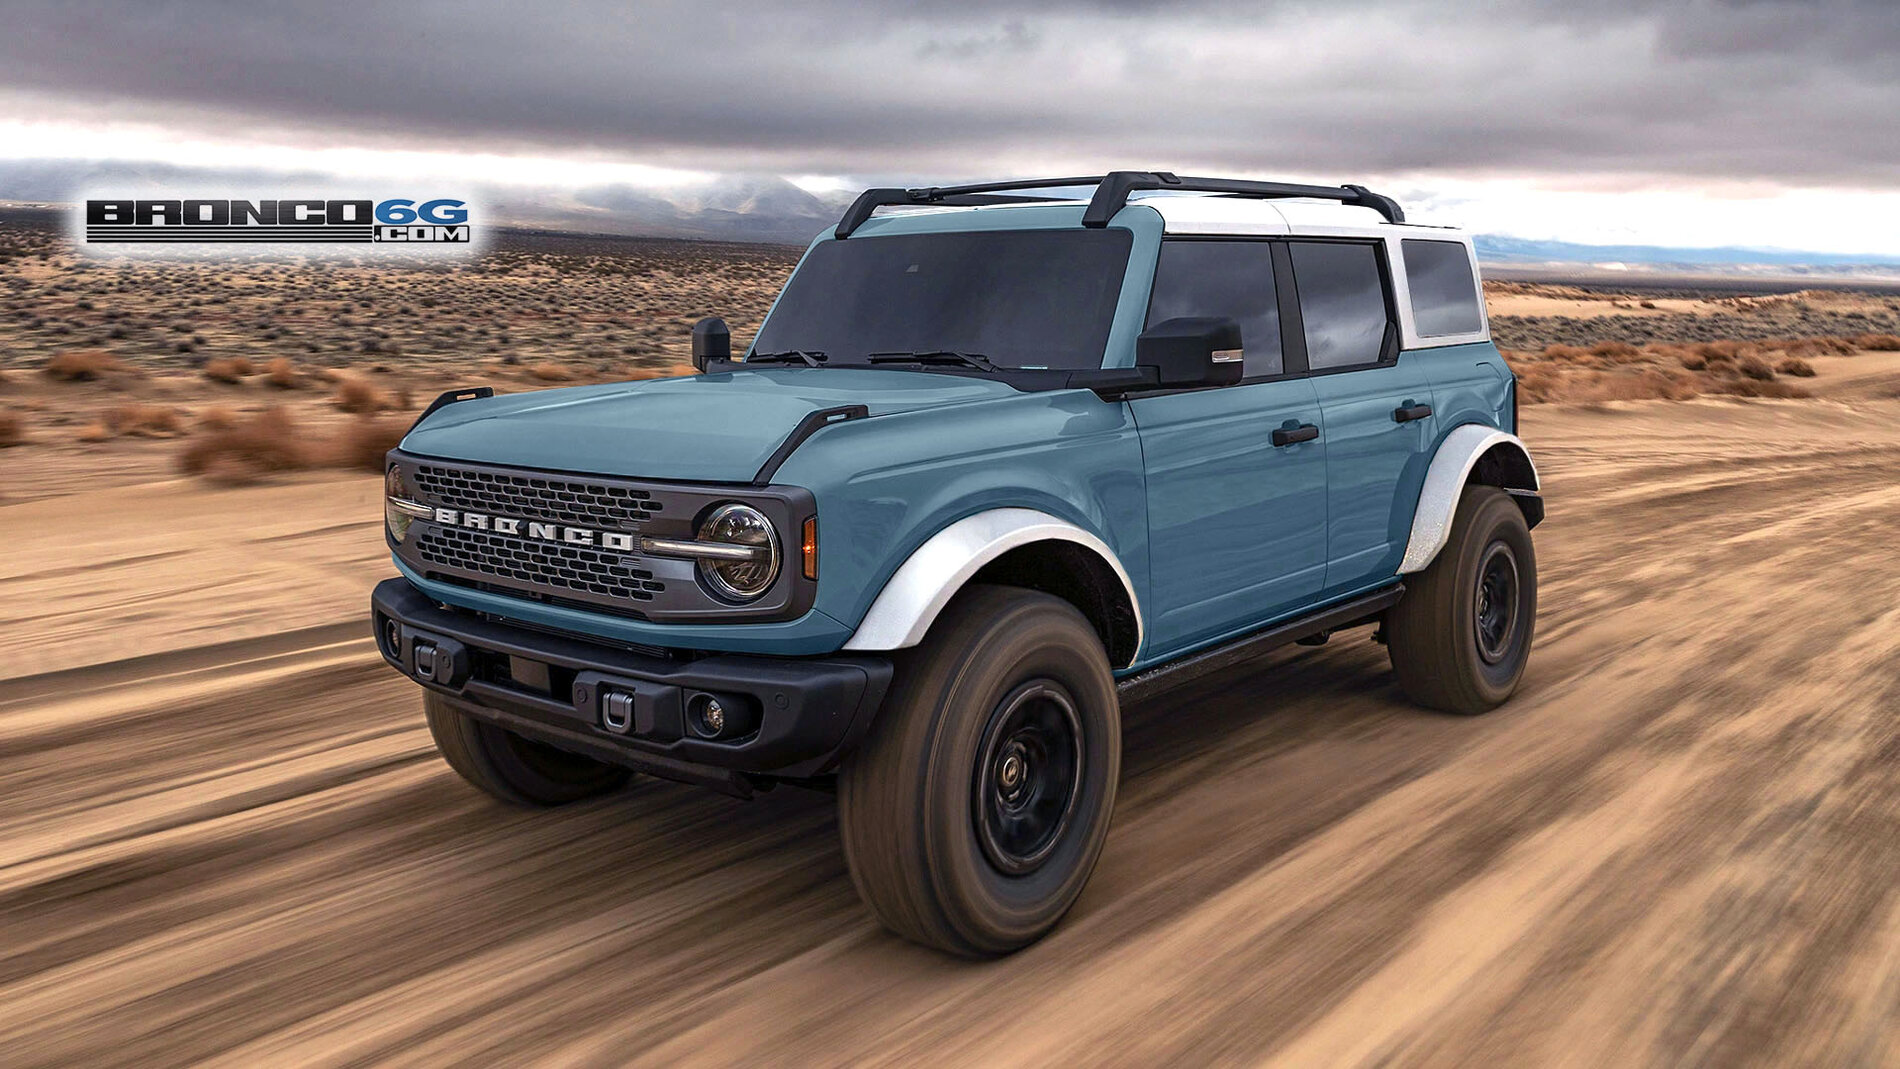 2021 Ford Bronco Sasquatch Area-51-white-roof-fendersBronco6G.com.jpg